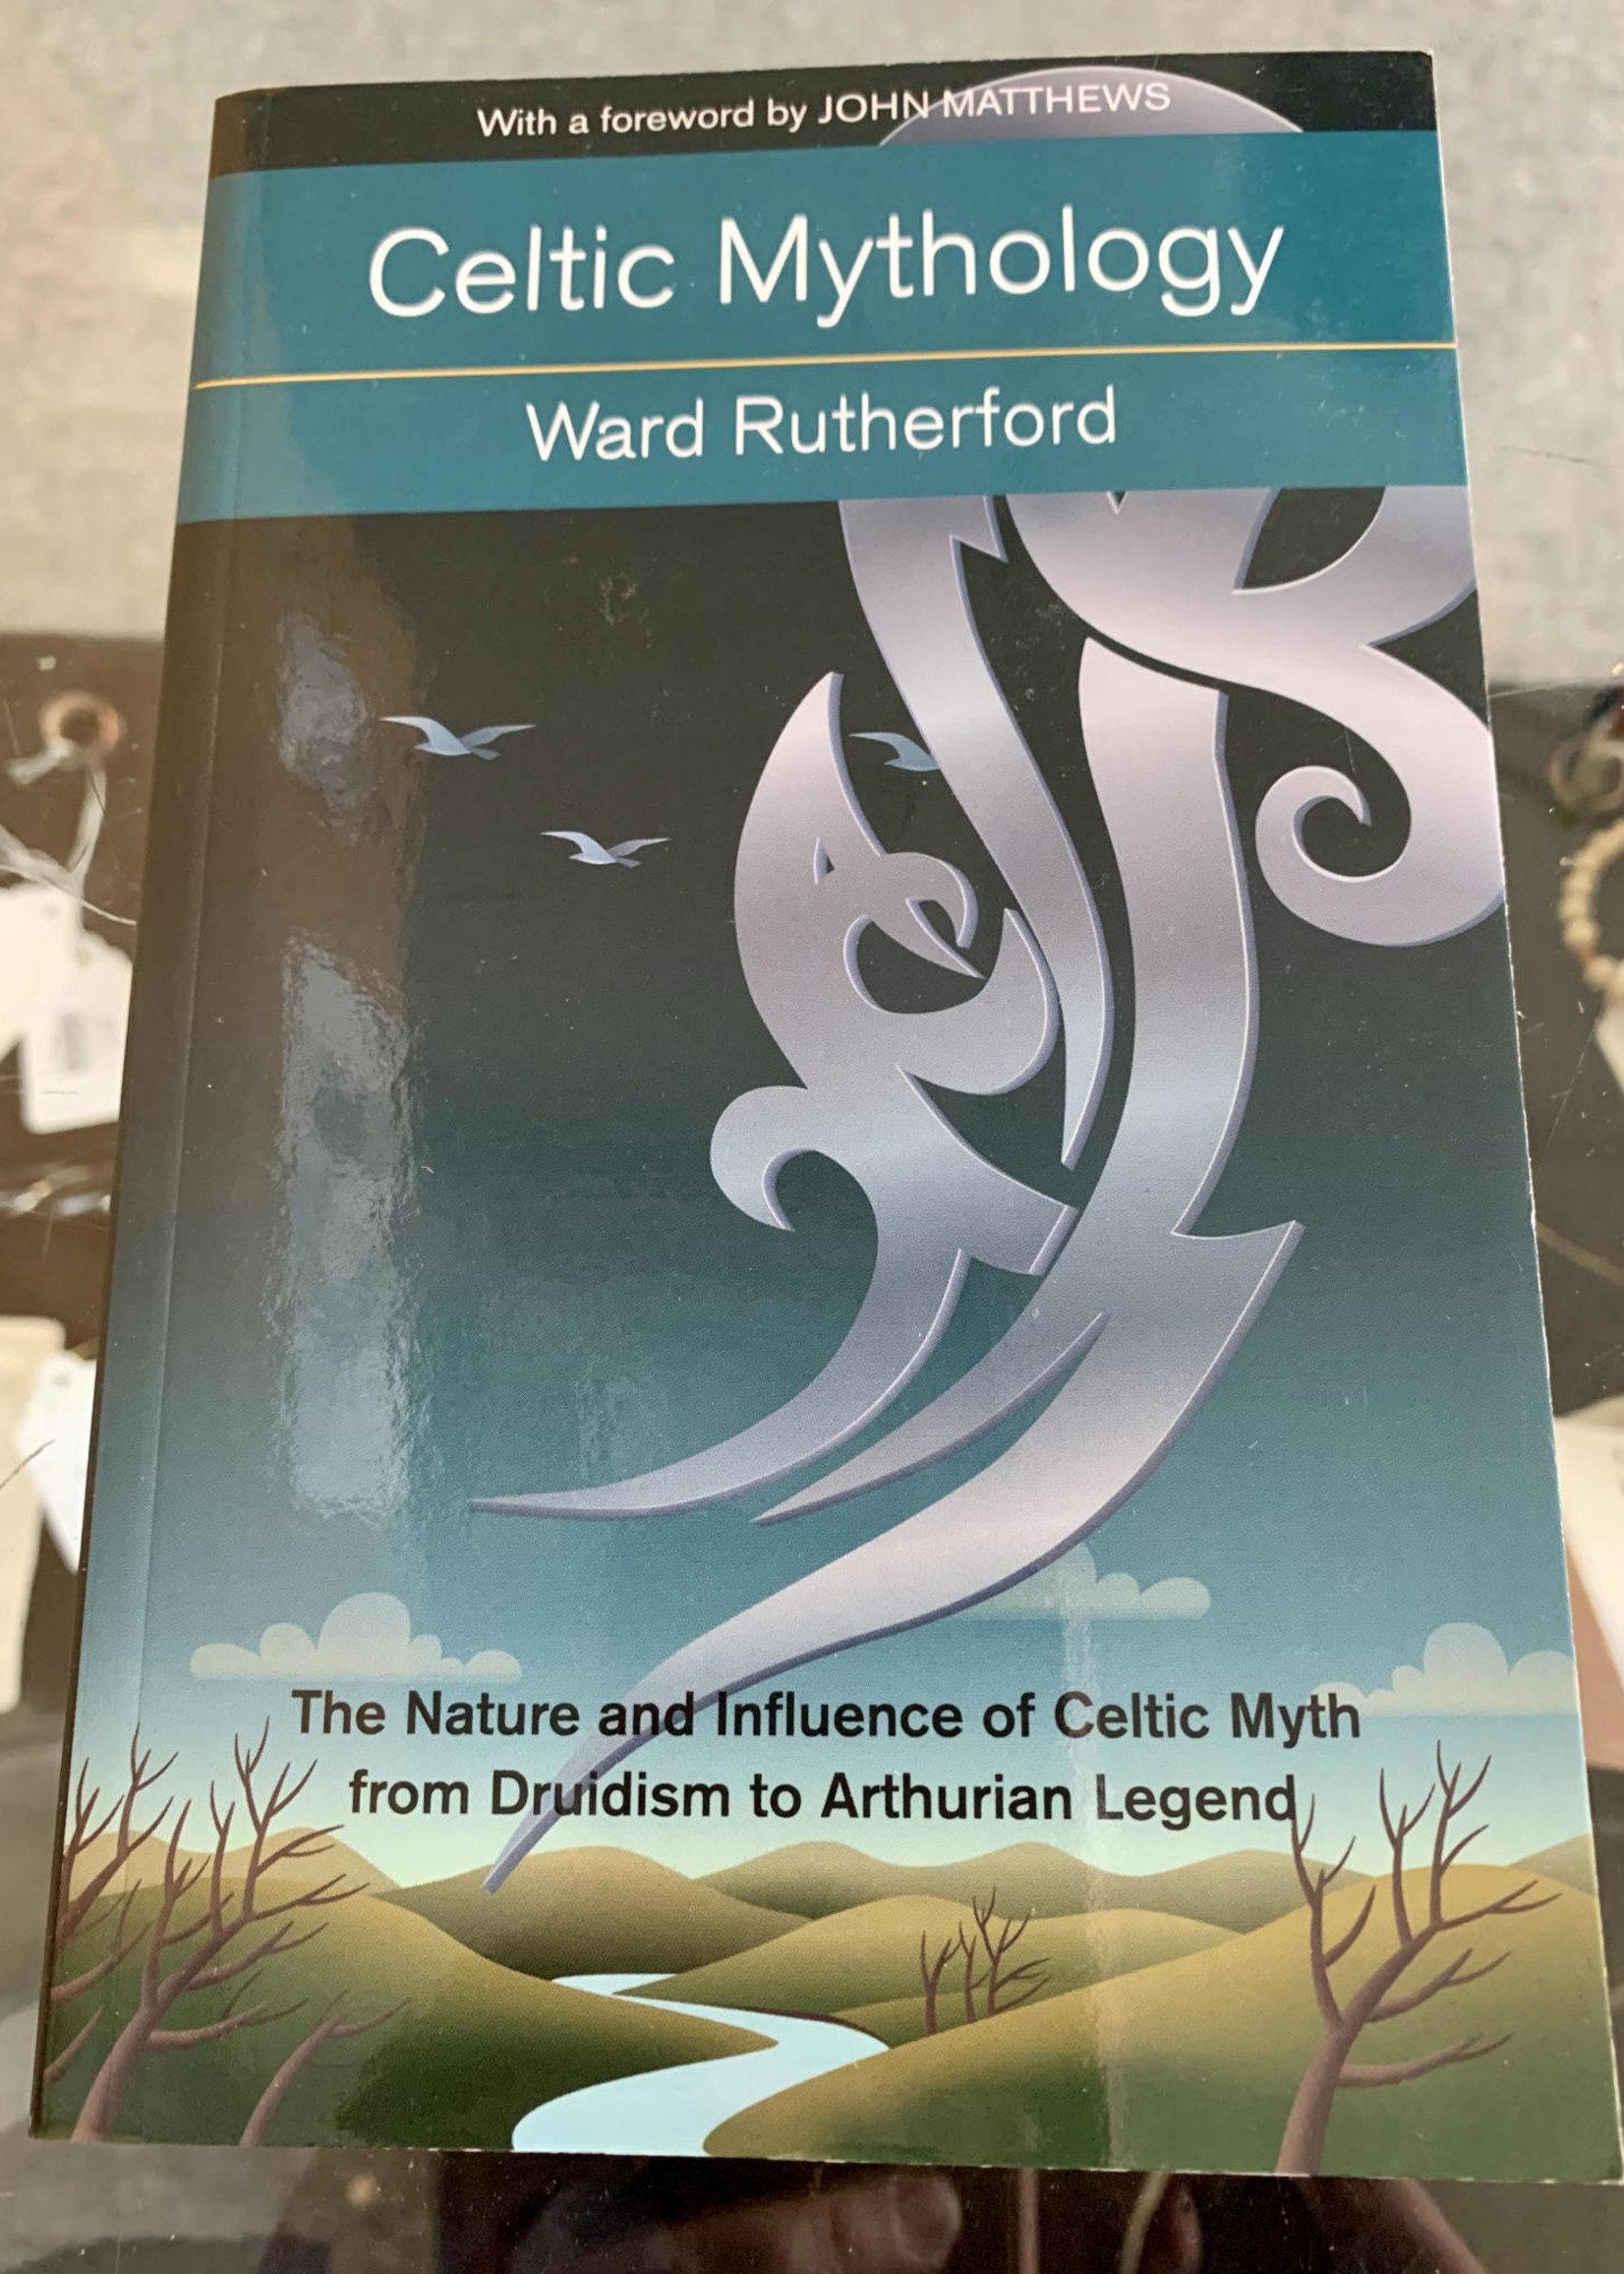 Celtic Mythology The Nature and Influence of Celtic Myth from Druidism to Arthurian Legend -  Ward Rutherford